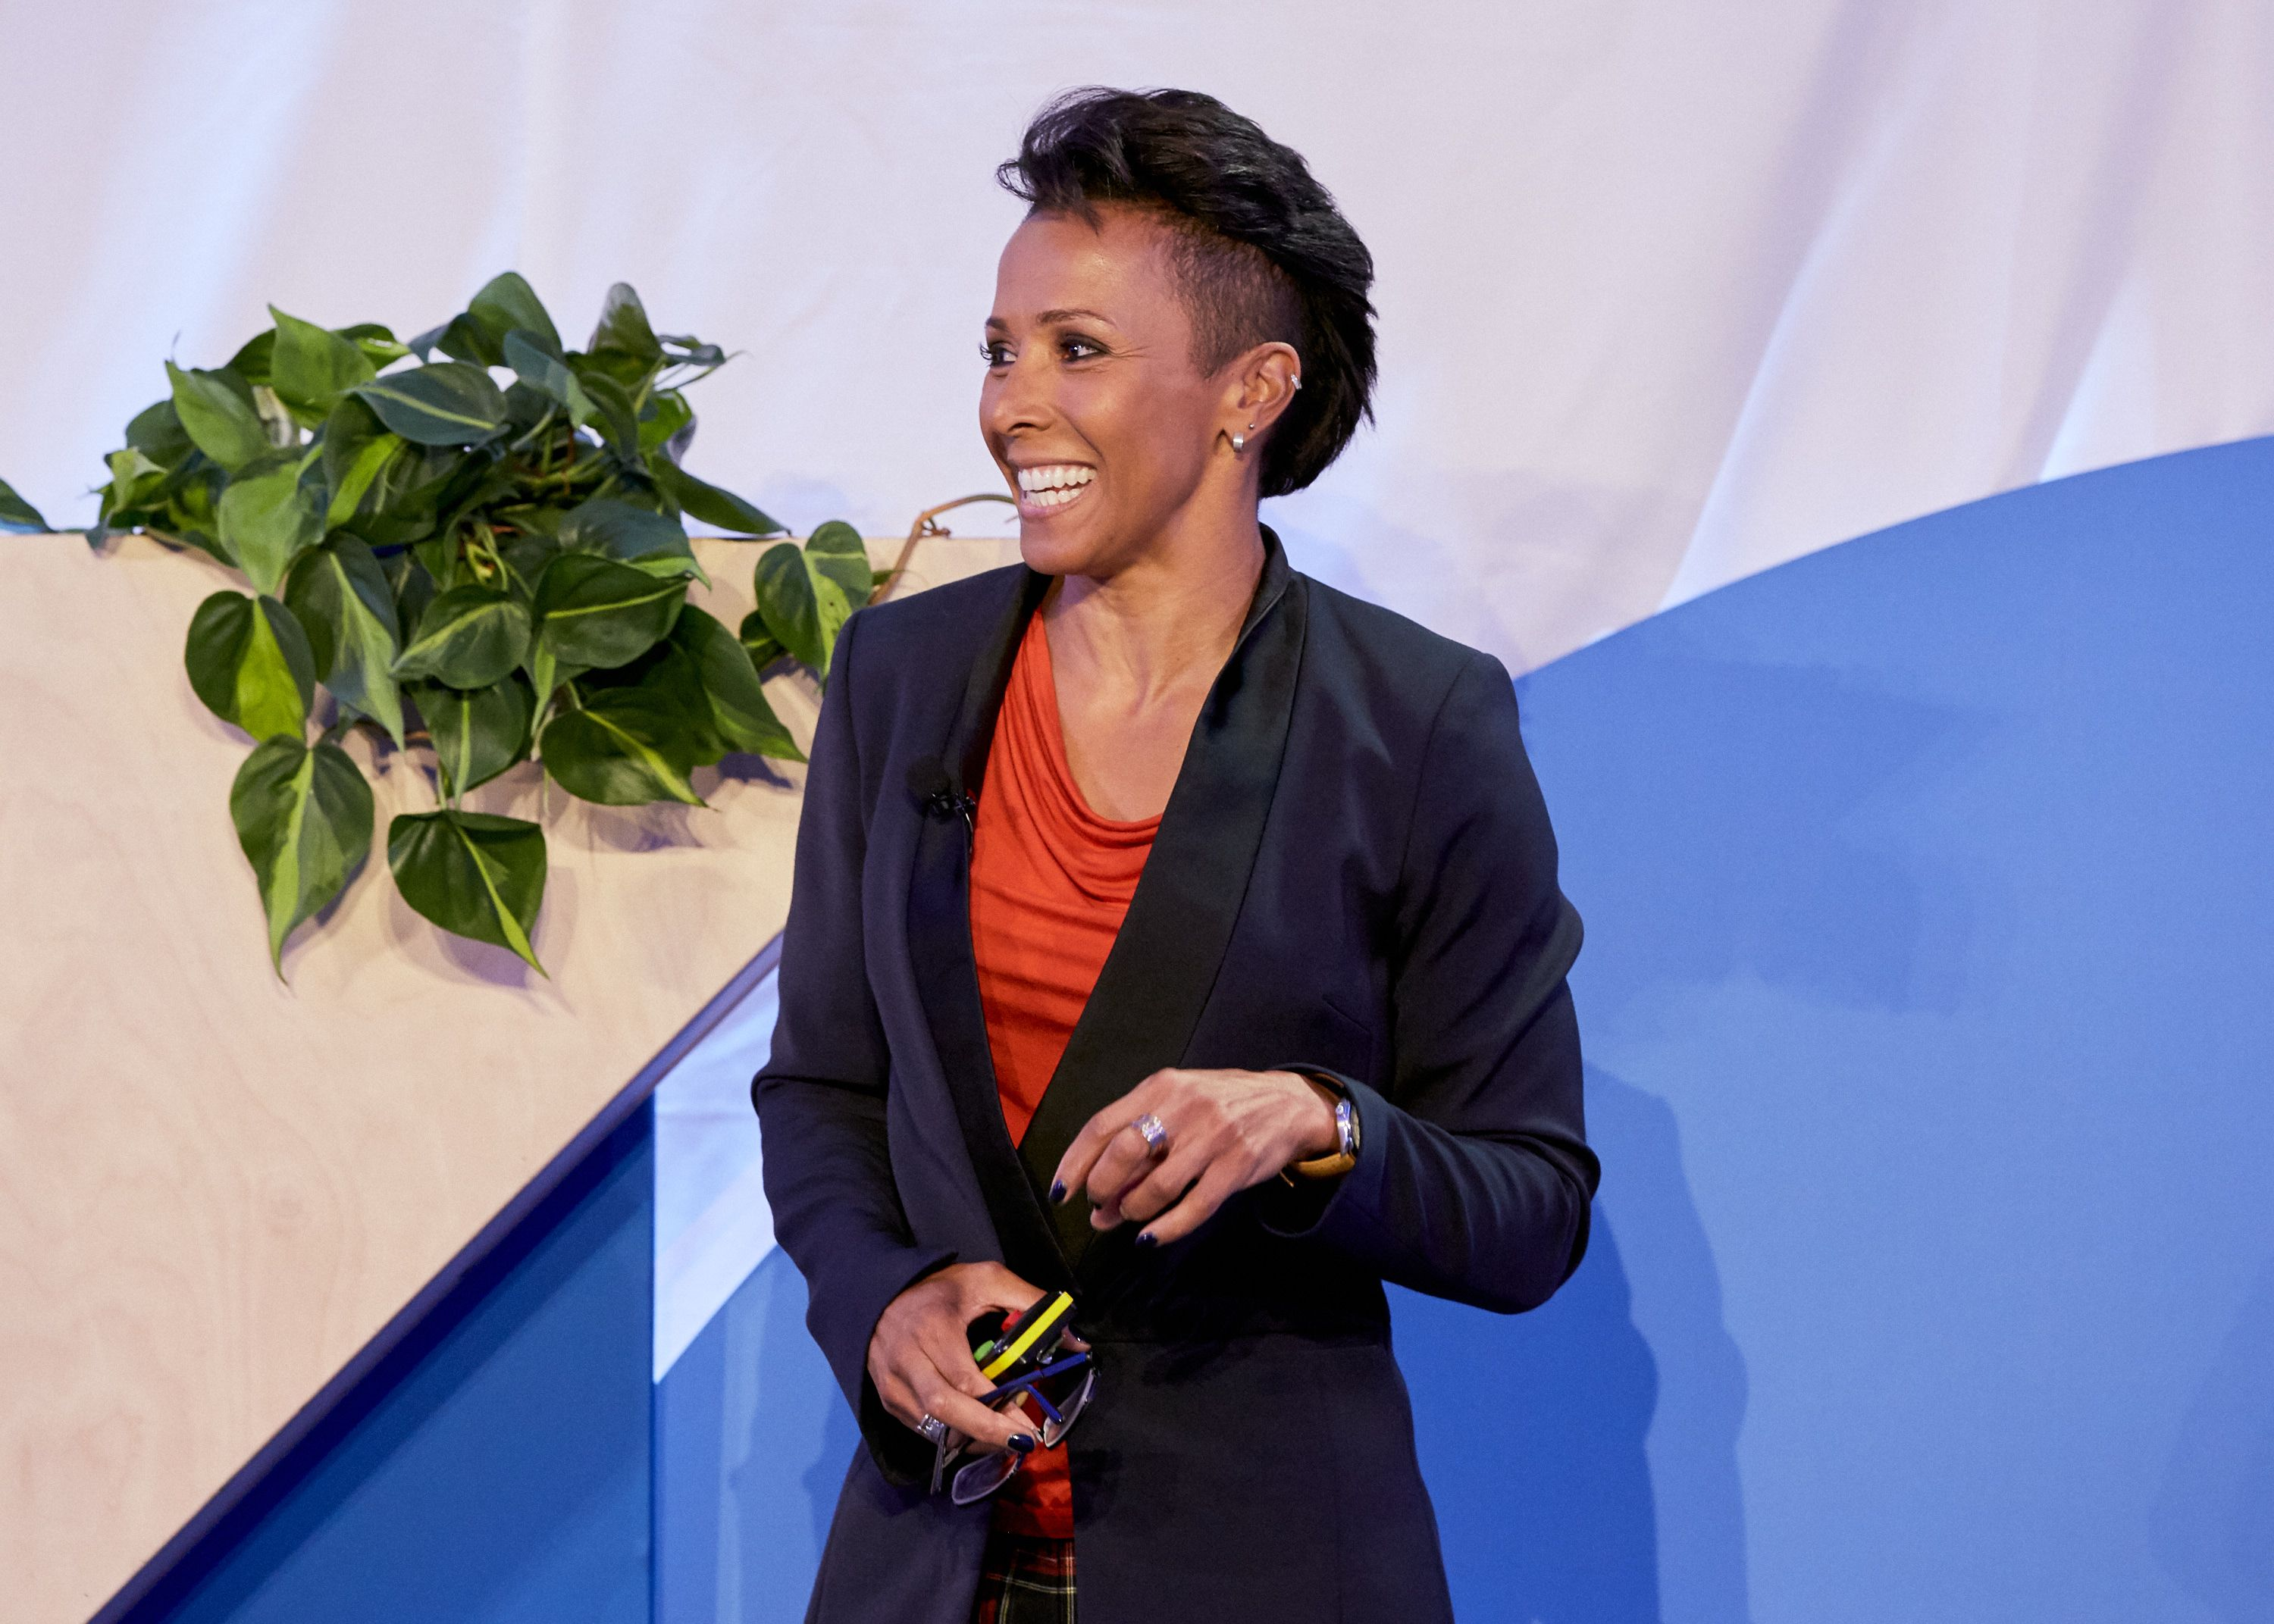 Dame Kelly Holmes MBE on learning to thrive